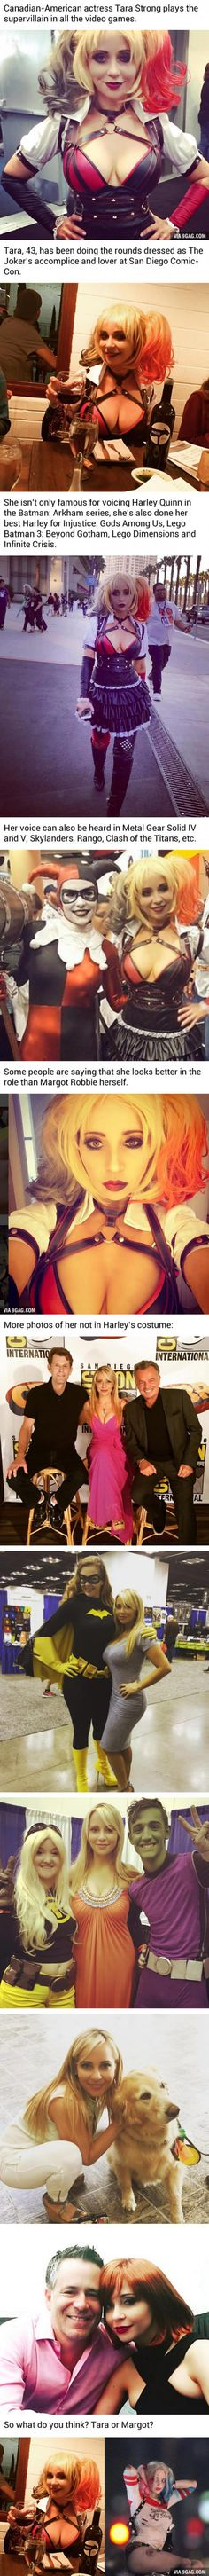 This Woman Plays Harley Quinn In All The Video Games... And She Is Already 43